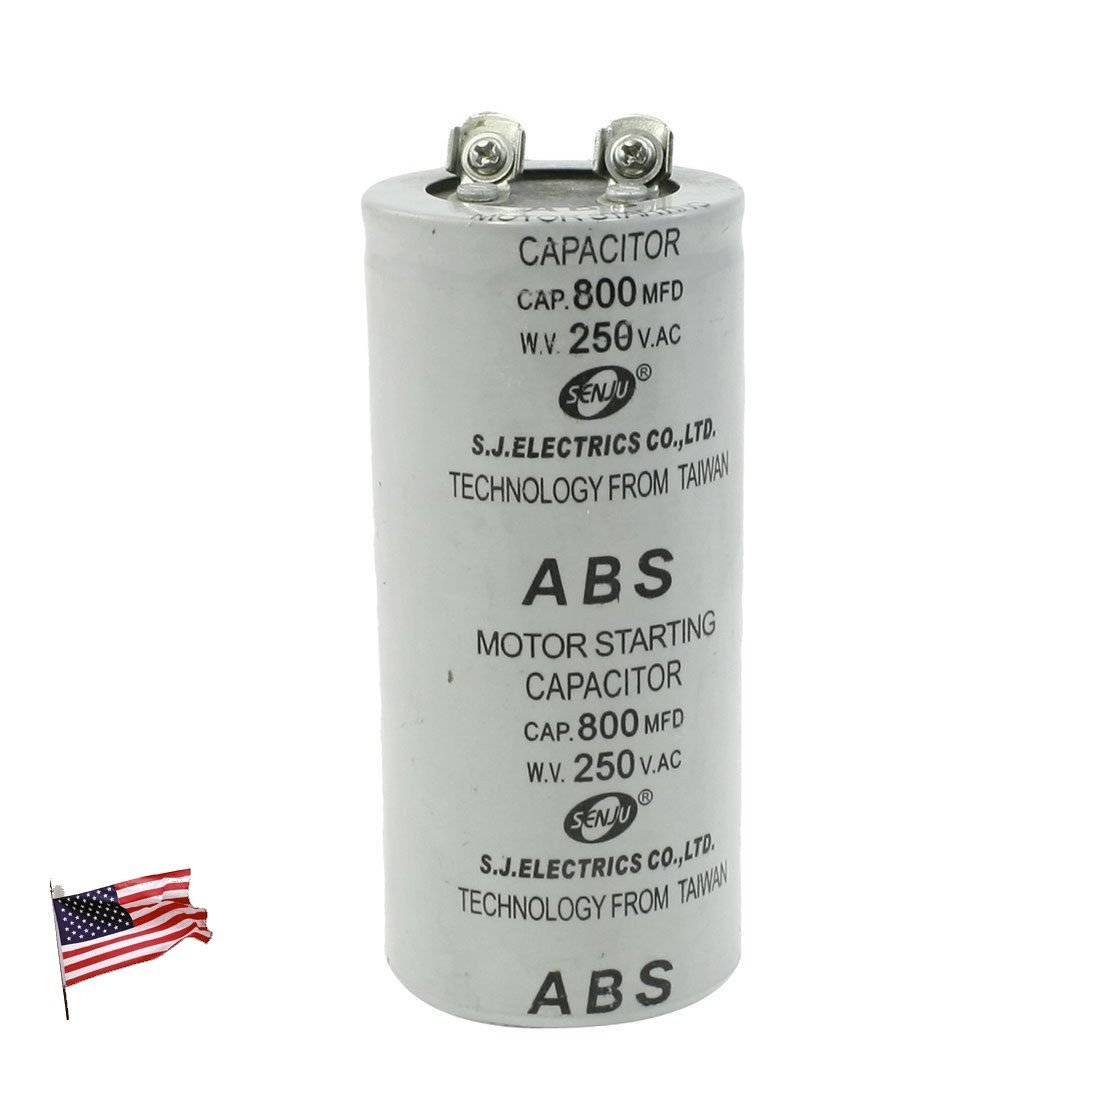 Capacitor US ABS 800MFD 800uF 250V Cylindrical AC Motor Starting by Capacitor